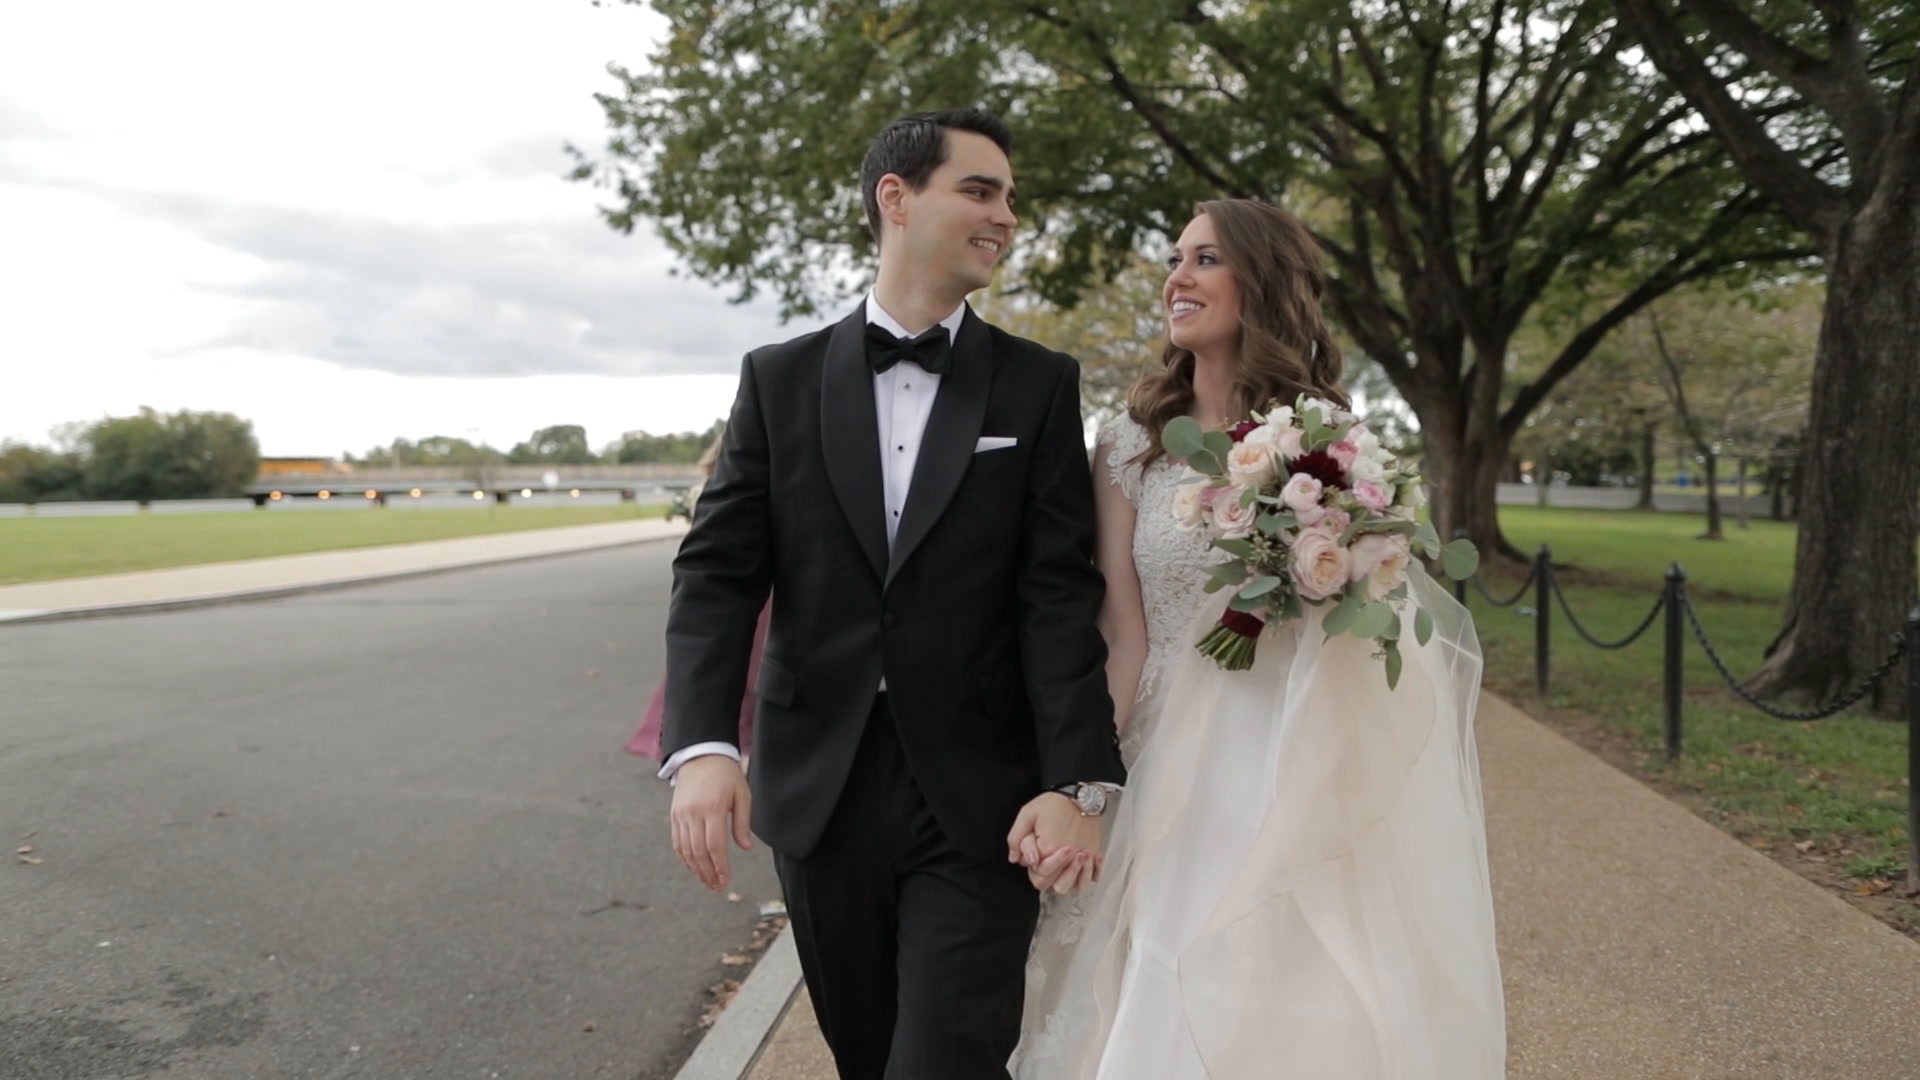 Kate + Mike | Washington, District of Columbia | National Museum of Women in the Arts